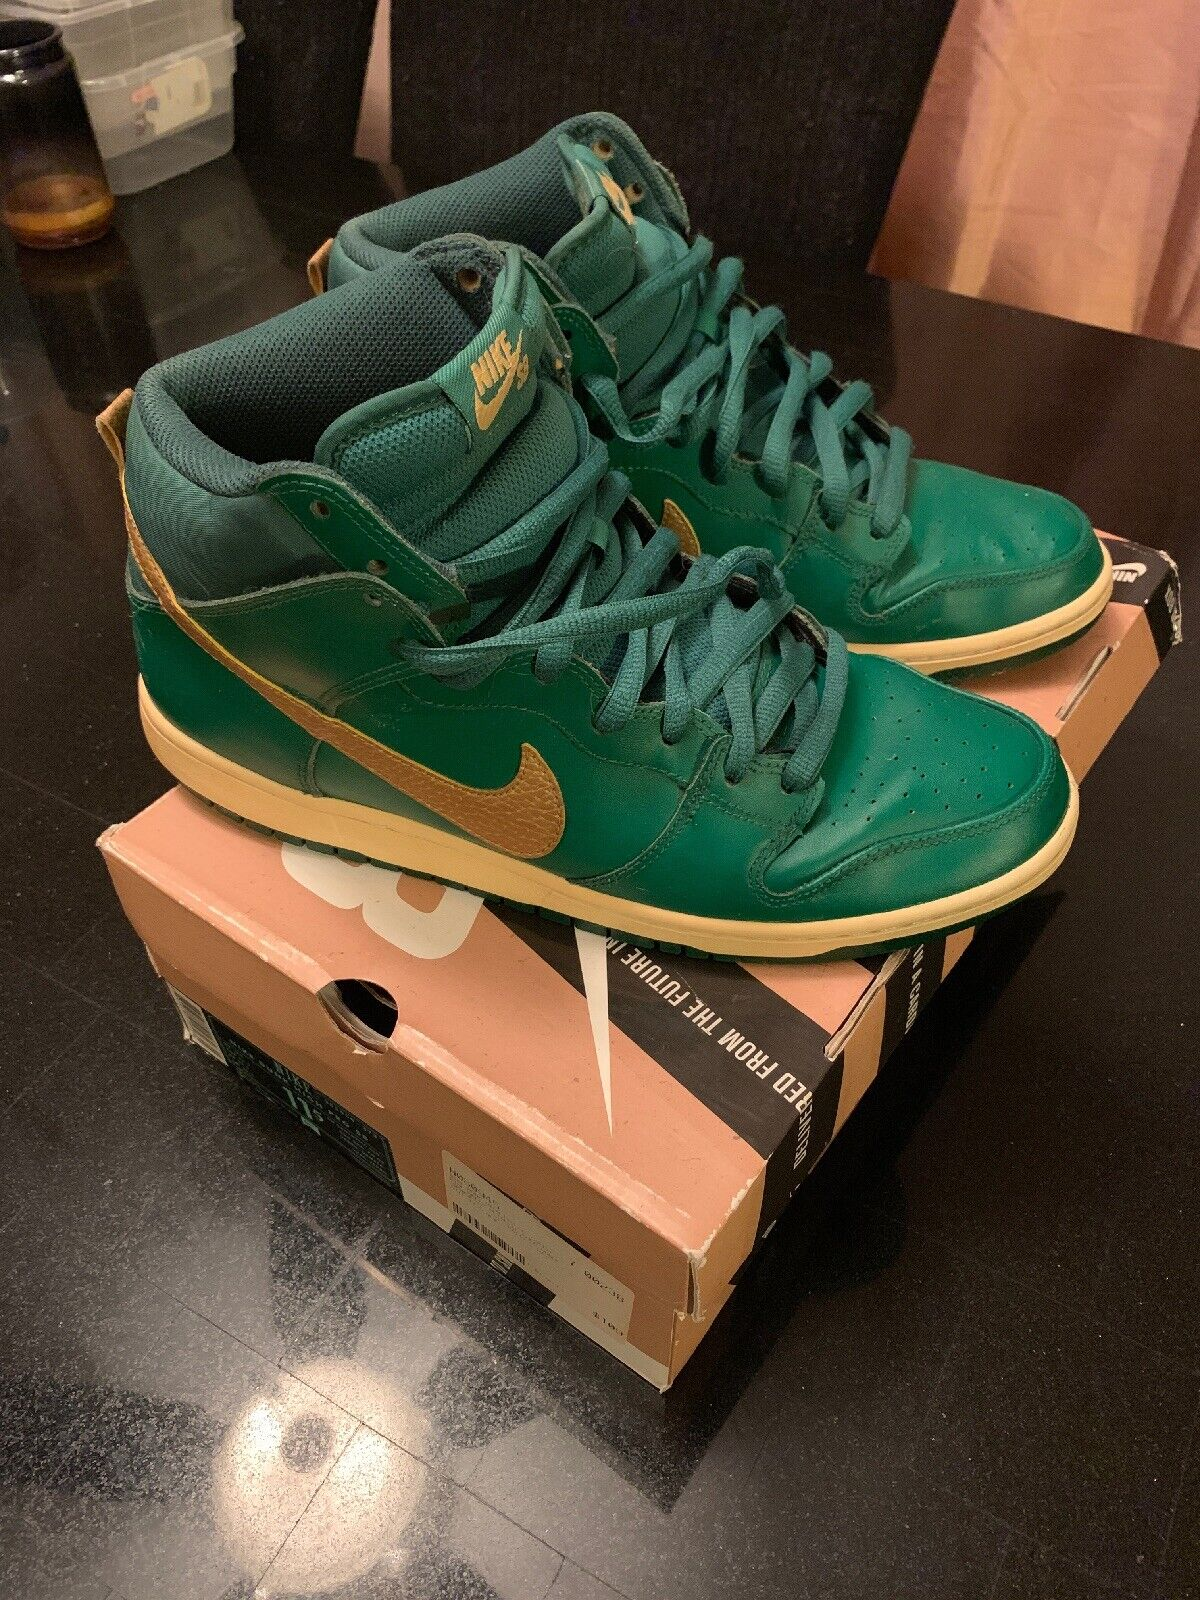 """Mens Nike SB Dunk High """"ST. PATTY'S DAY"""" DAY"""" DAY"""" 11.5 59a1c0"""